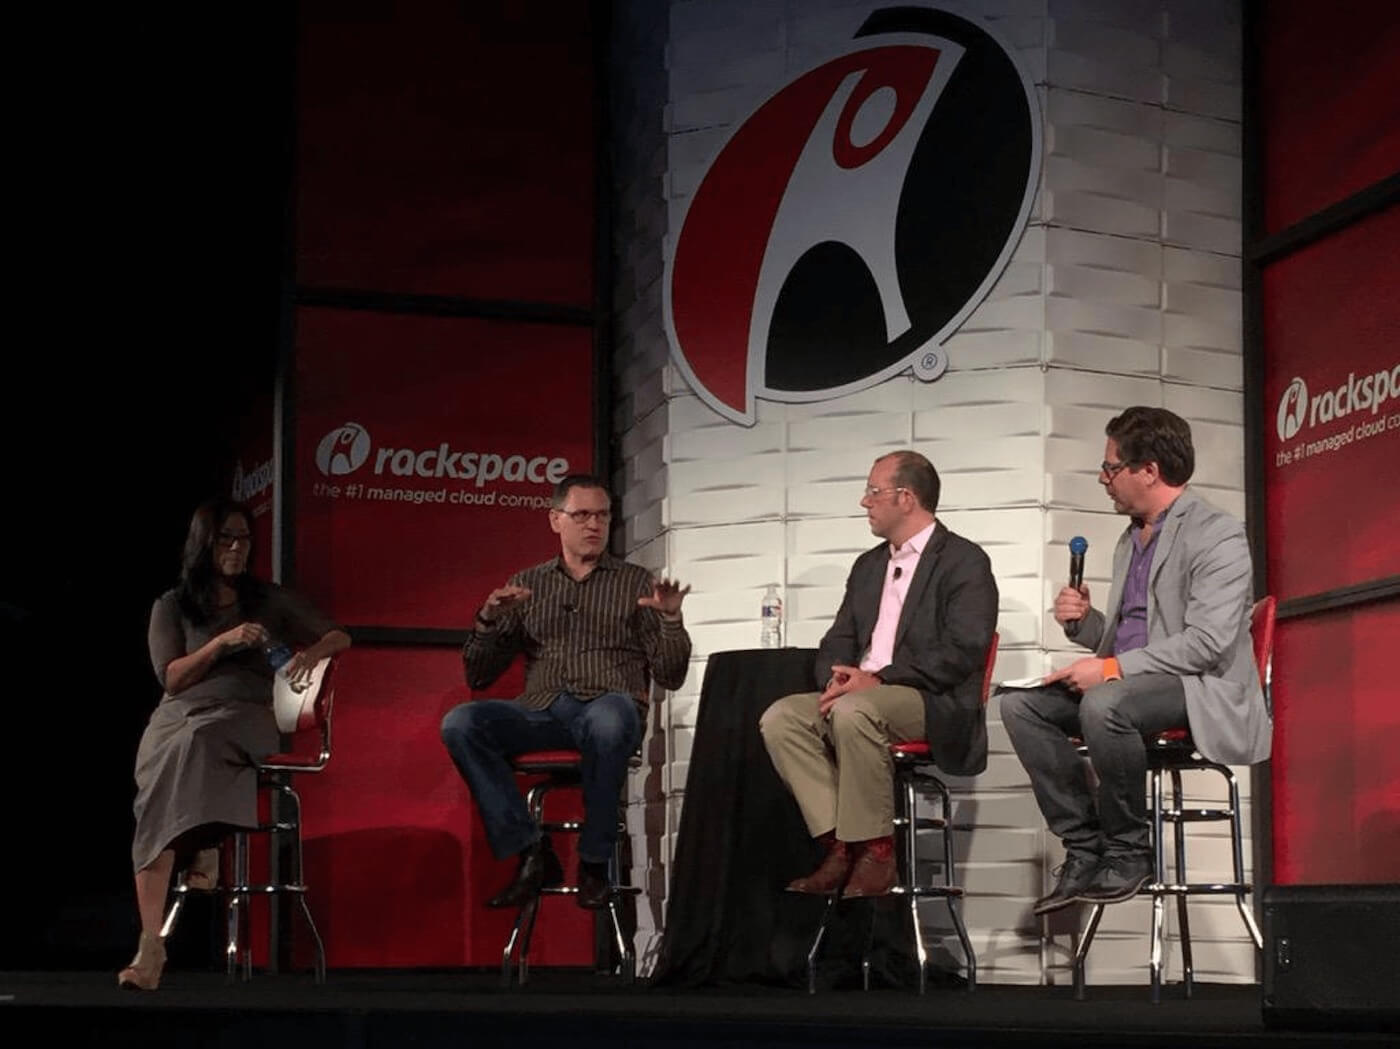 christian rackspace talk